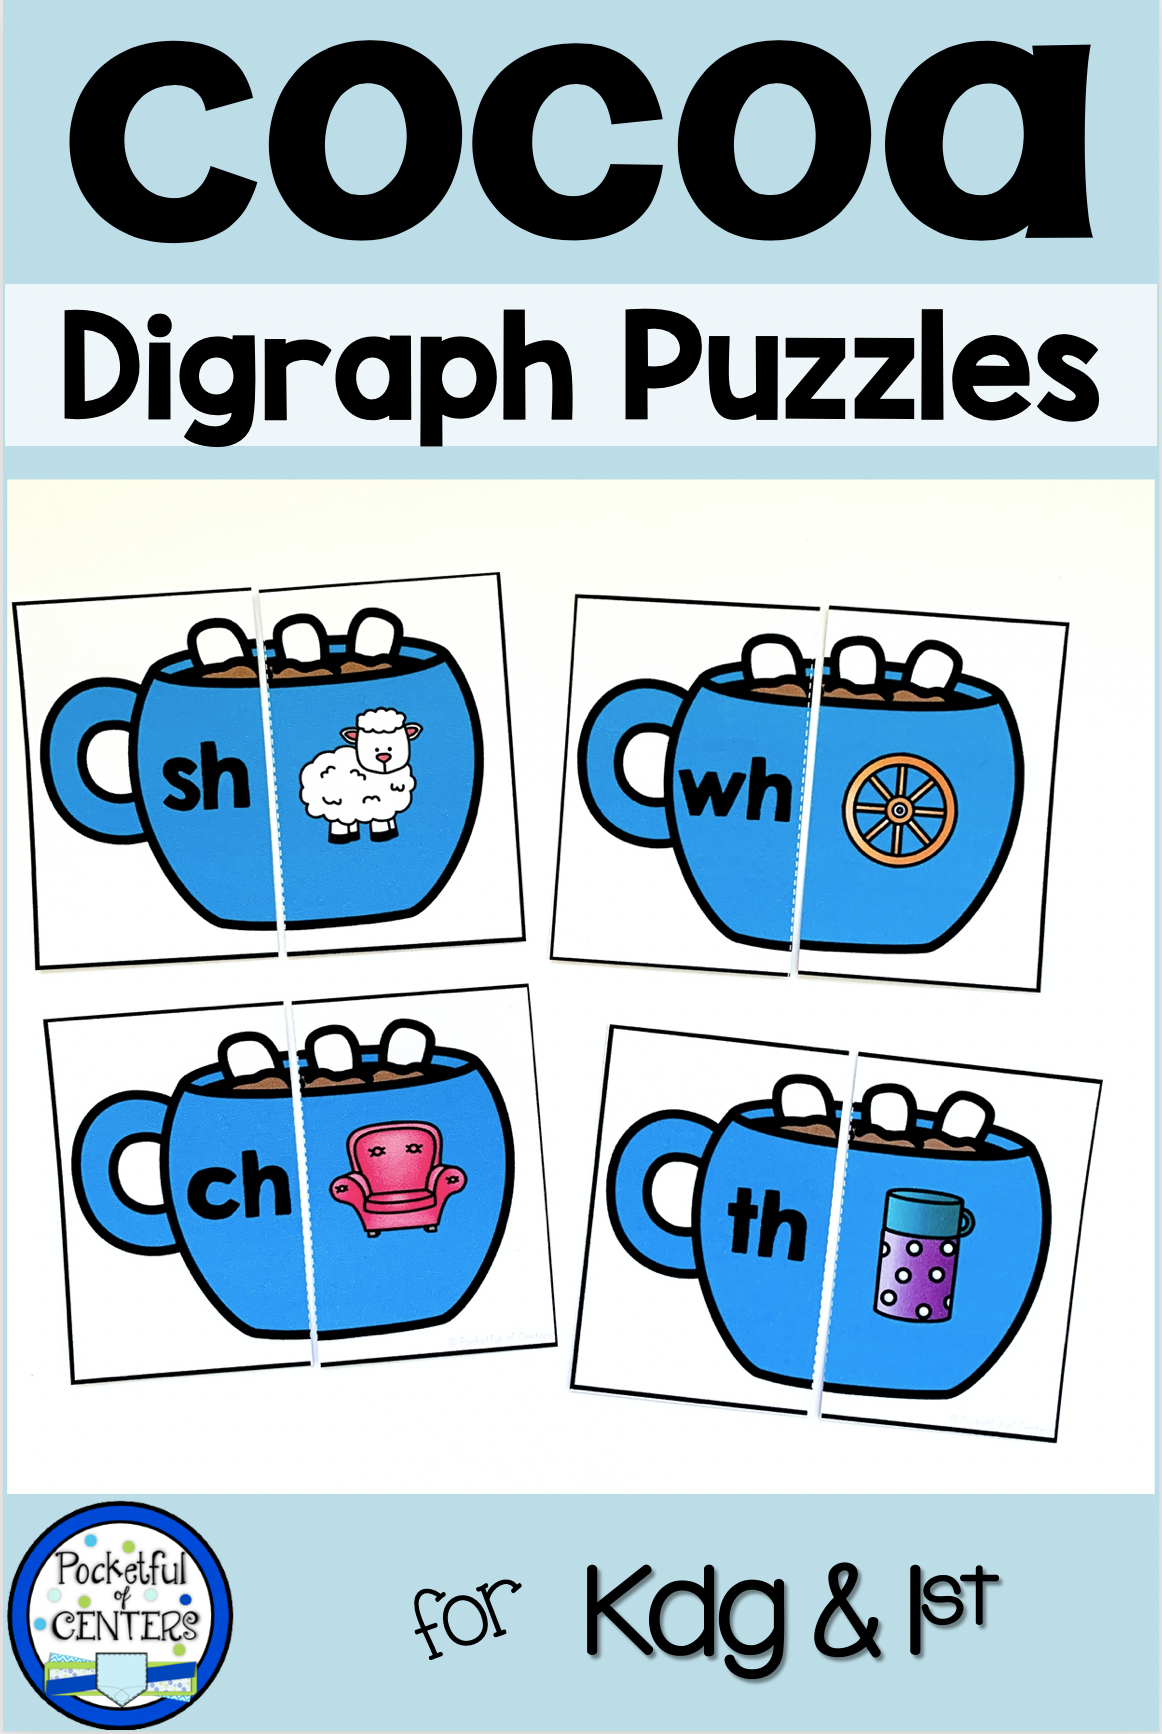 Hot Cocoa Hot Chocolate Digraphs Puzzles Ch Sh Th Wh